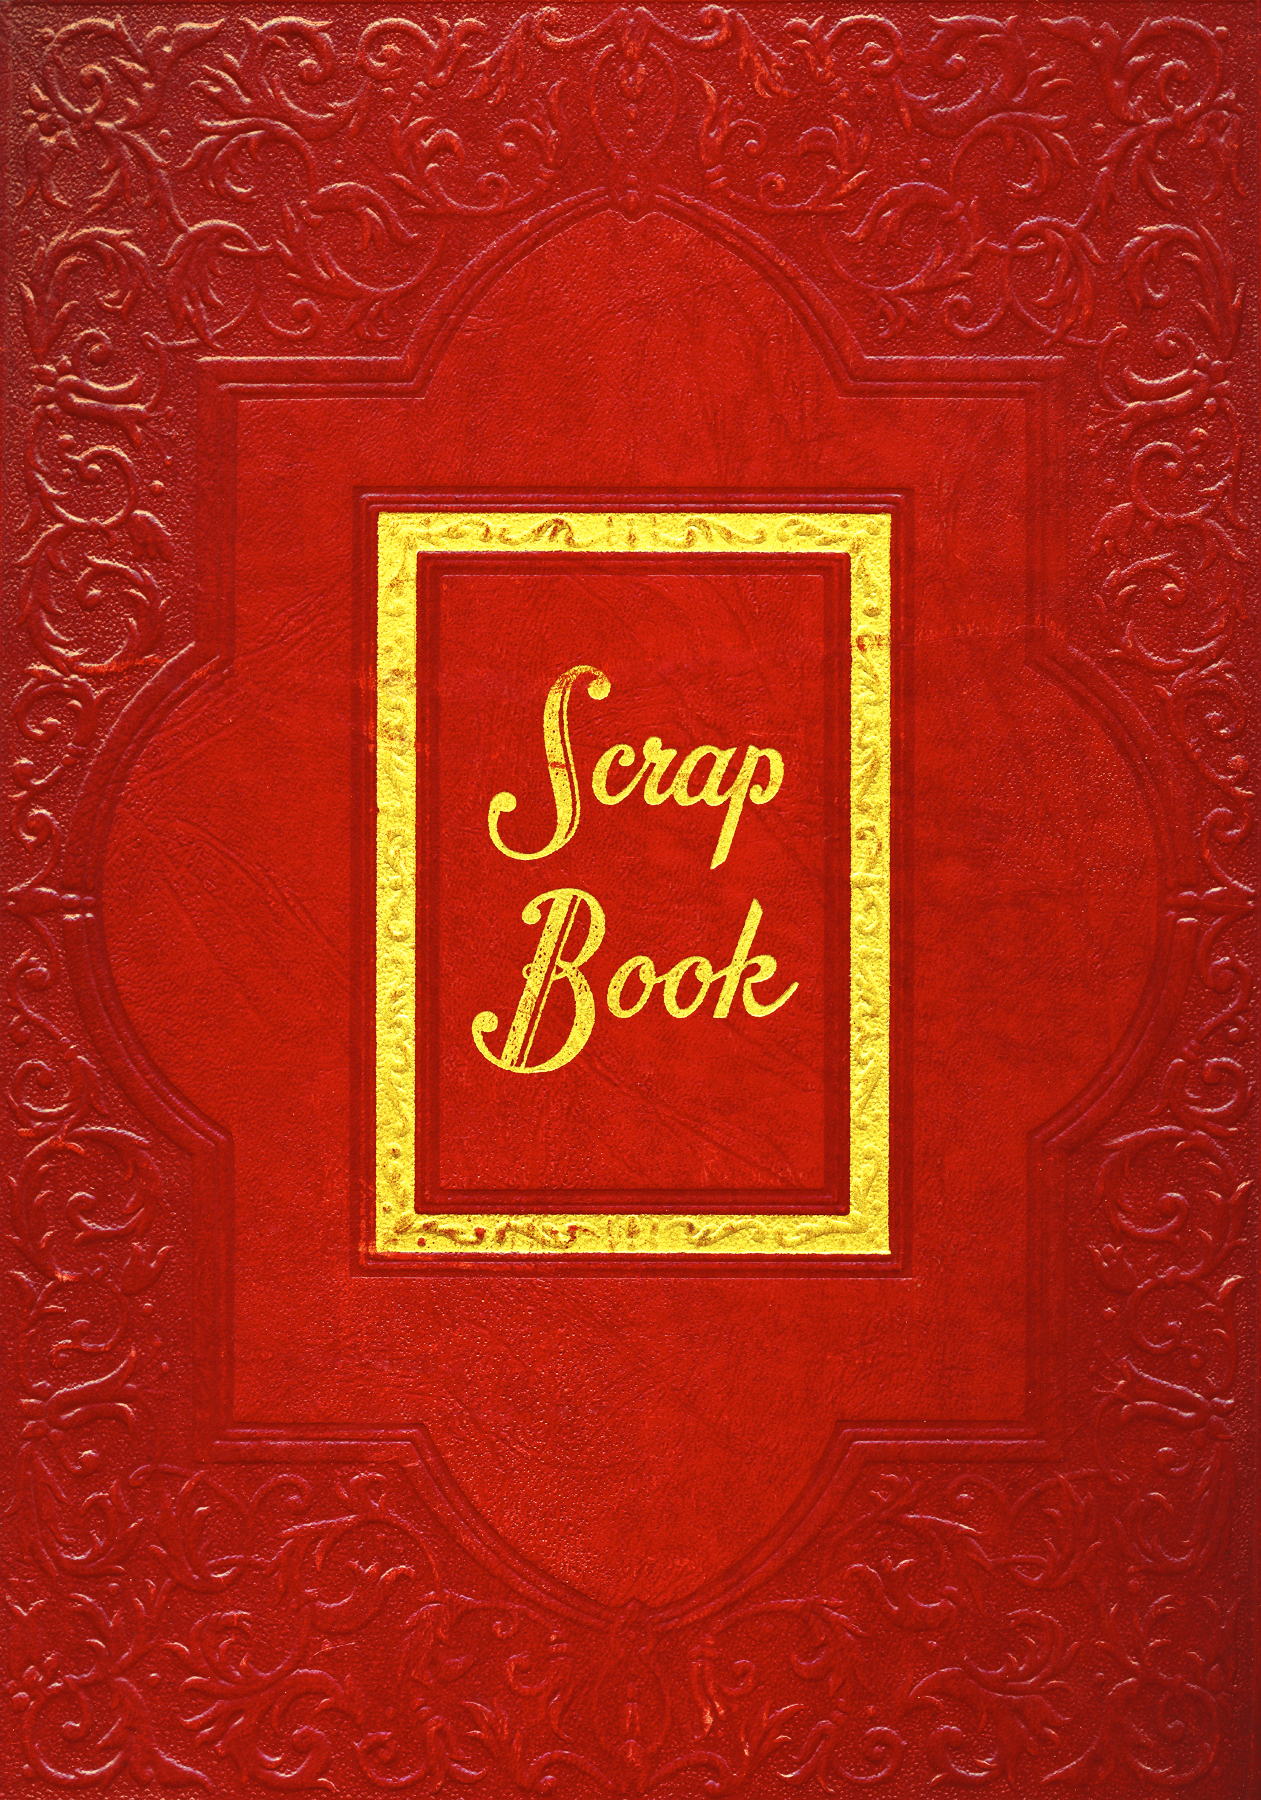 Free Photo Vintage Scrapbook Cover Red Res Red Rectangular